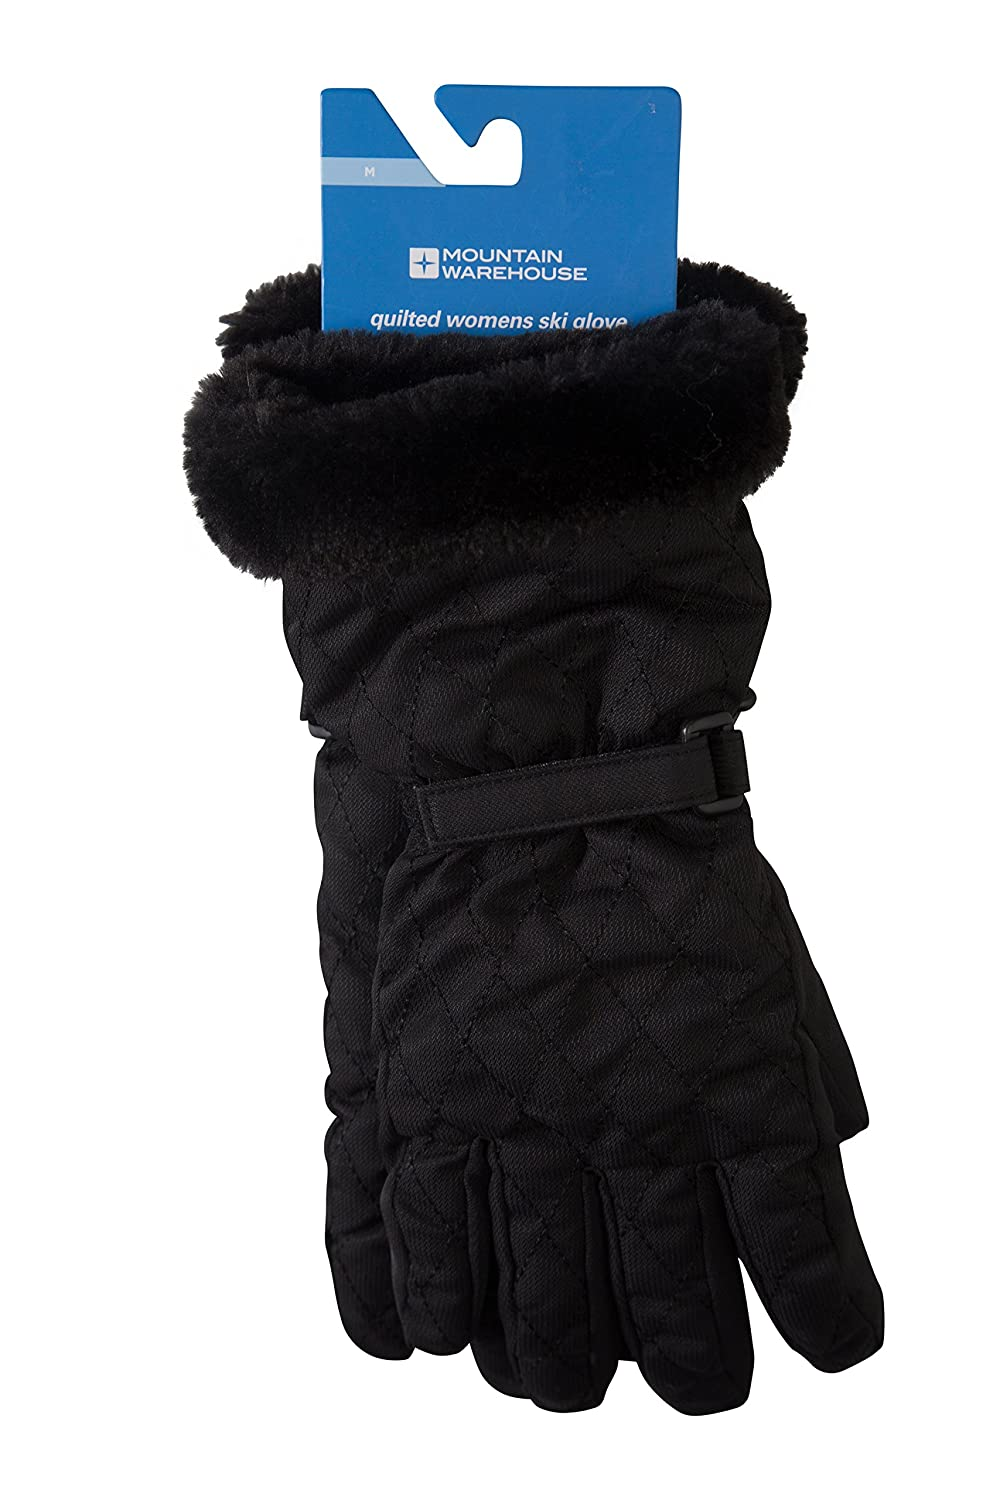 Mountain Warehouse Quilted Womens Ski Gloves - Water-Resistant Fabric, Faux-Fur Hem for Extra Warm with Textured Palm & Fingers, Elasticized Cuffs - Great for Skiing